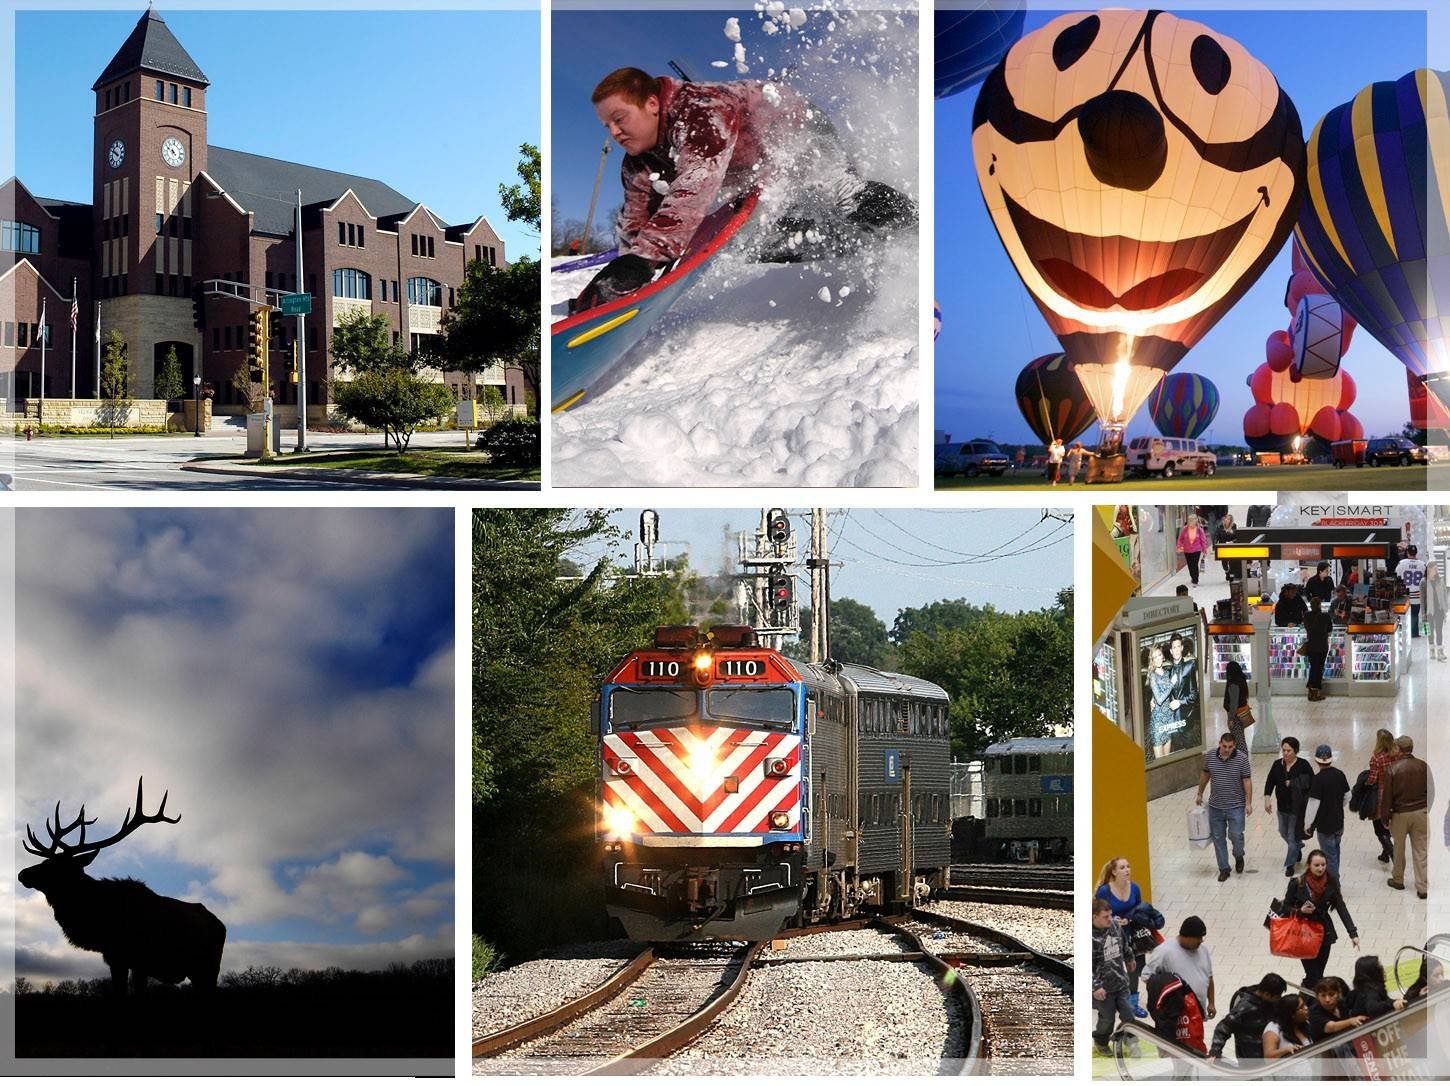 Your 2015 Guide to the Suburbs: It's our best advice, but share yours too